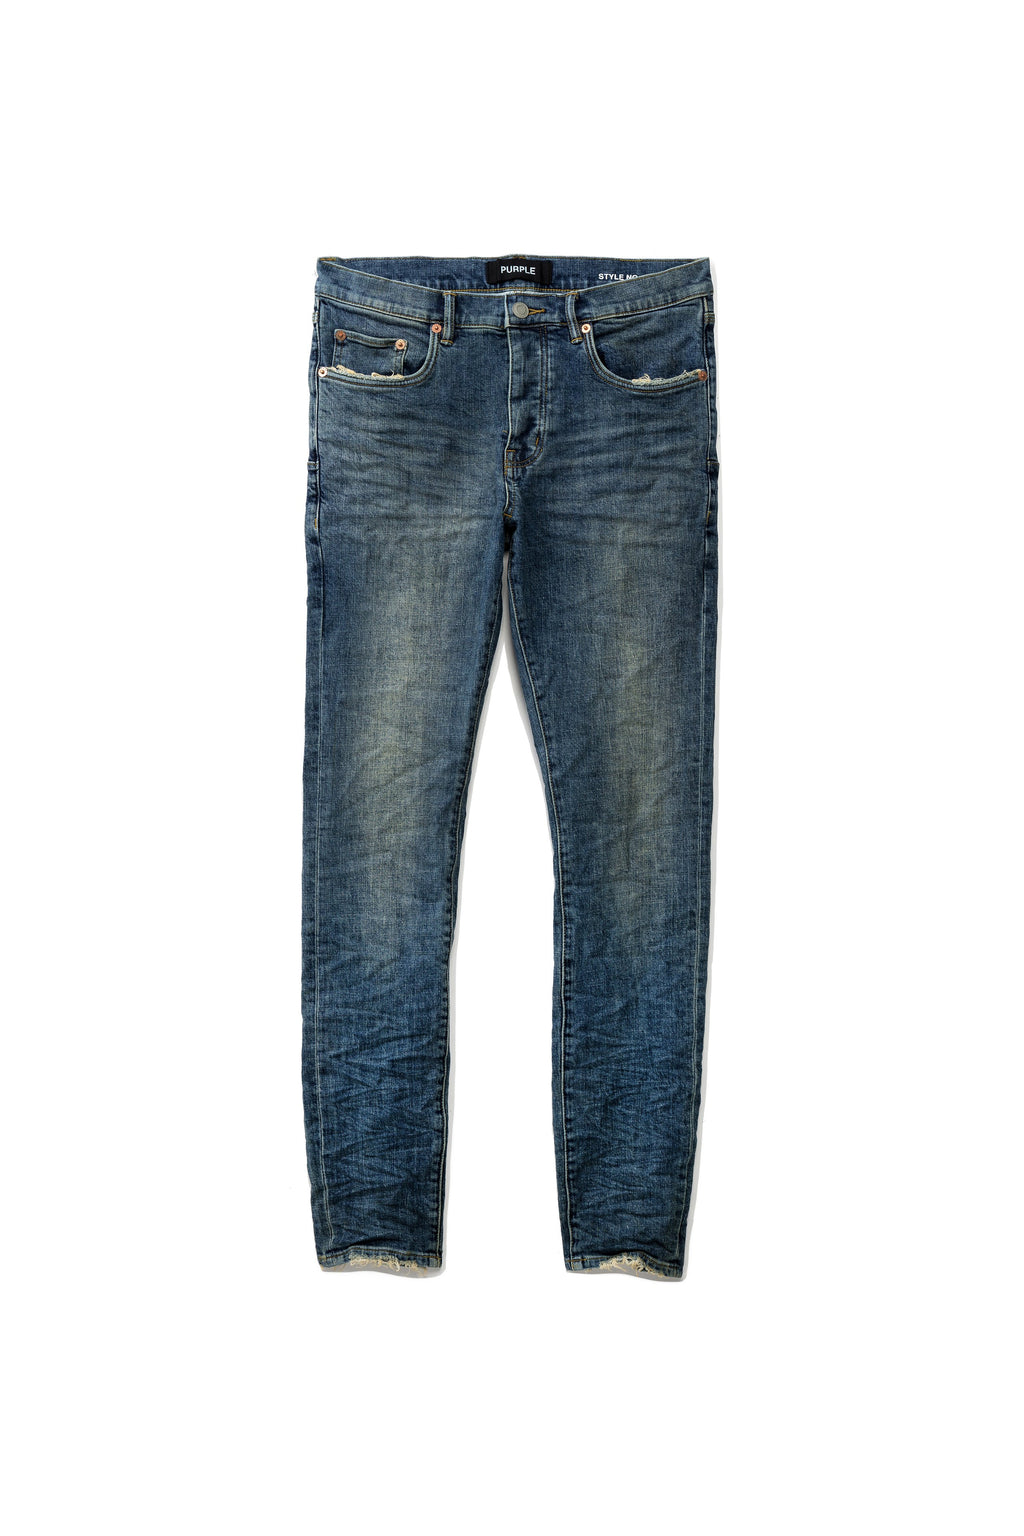 P001 LOW RISE WITH SLIM LEG - MID BLUE